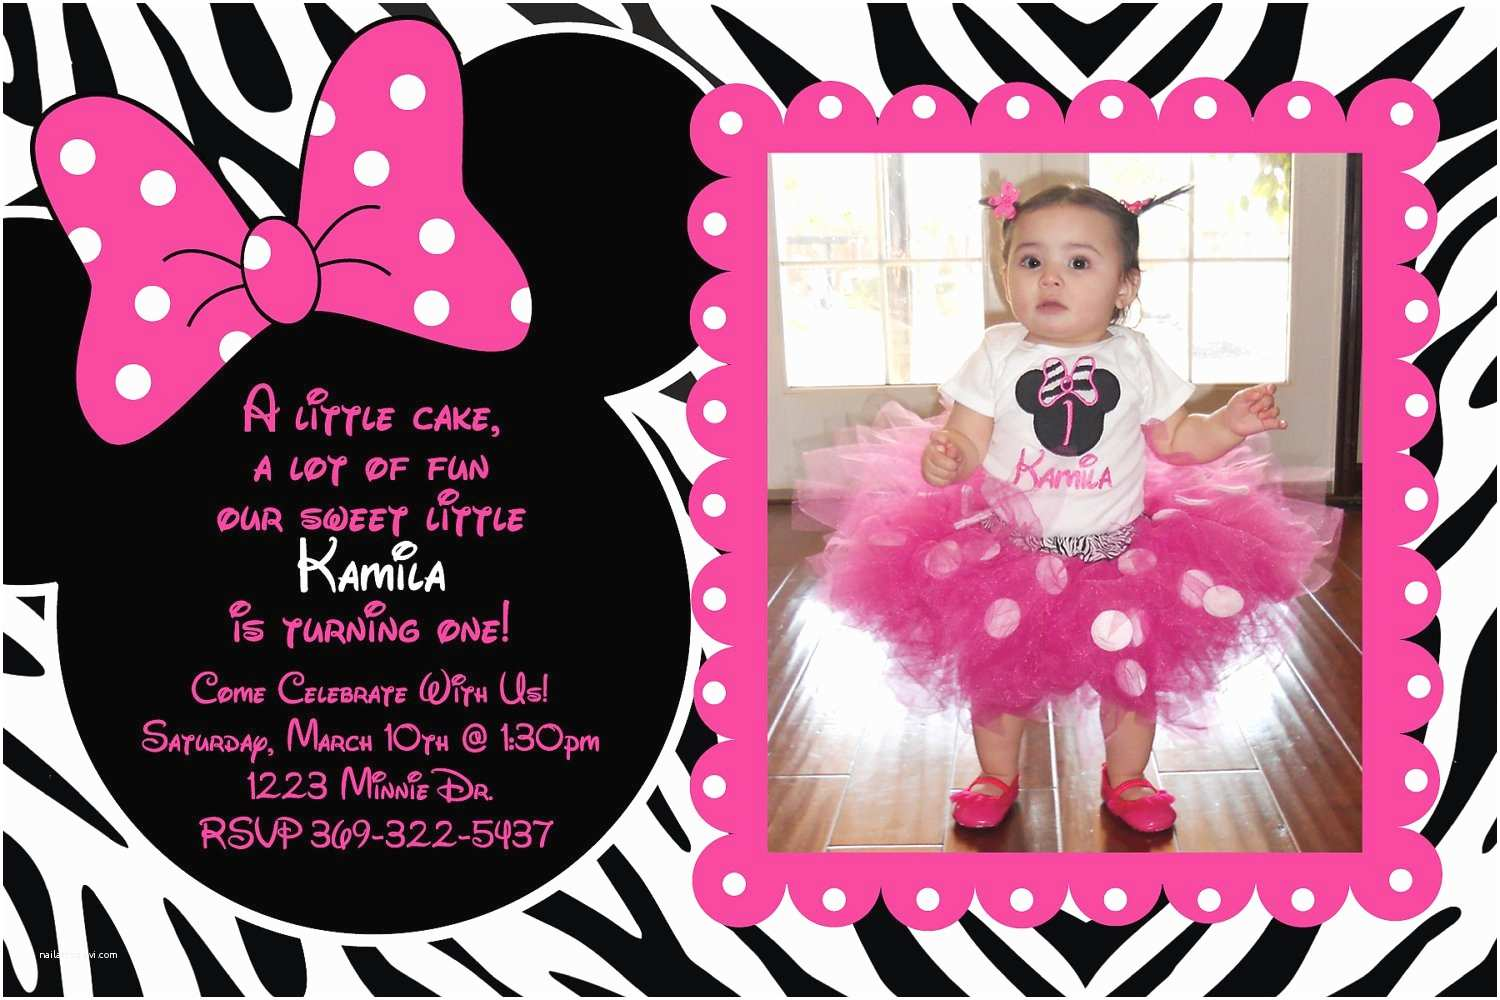 Personalized Birthday Invitations Personalized Minnie Mouse Birthday Invitations